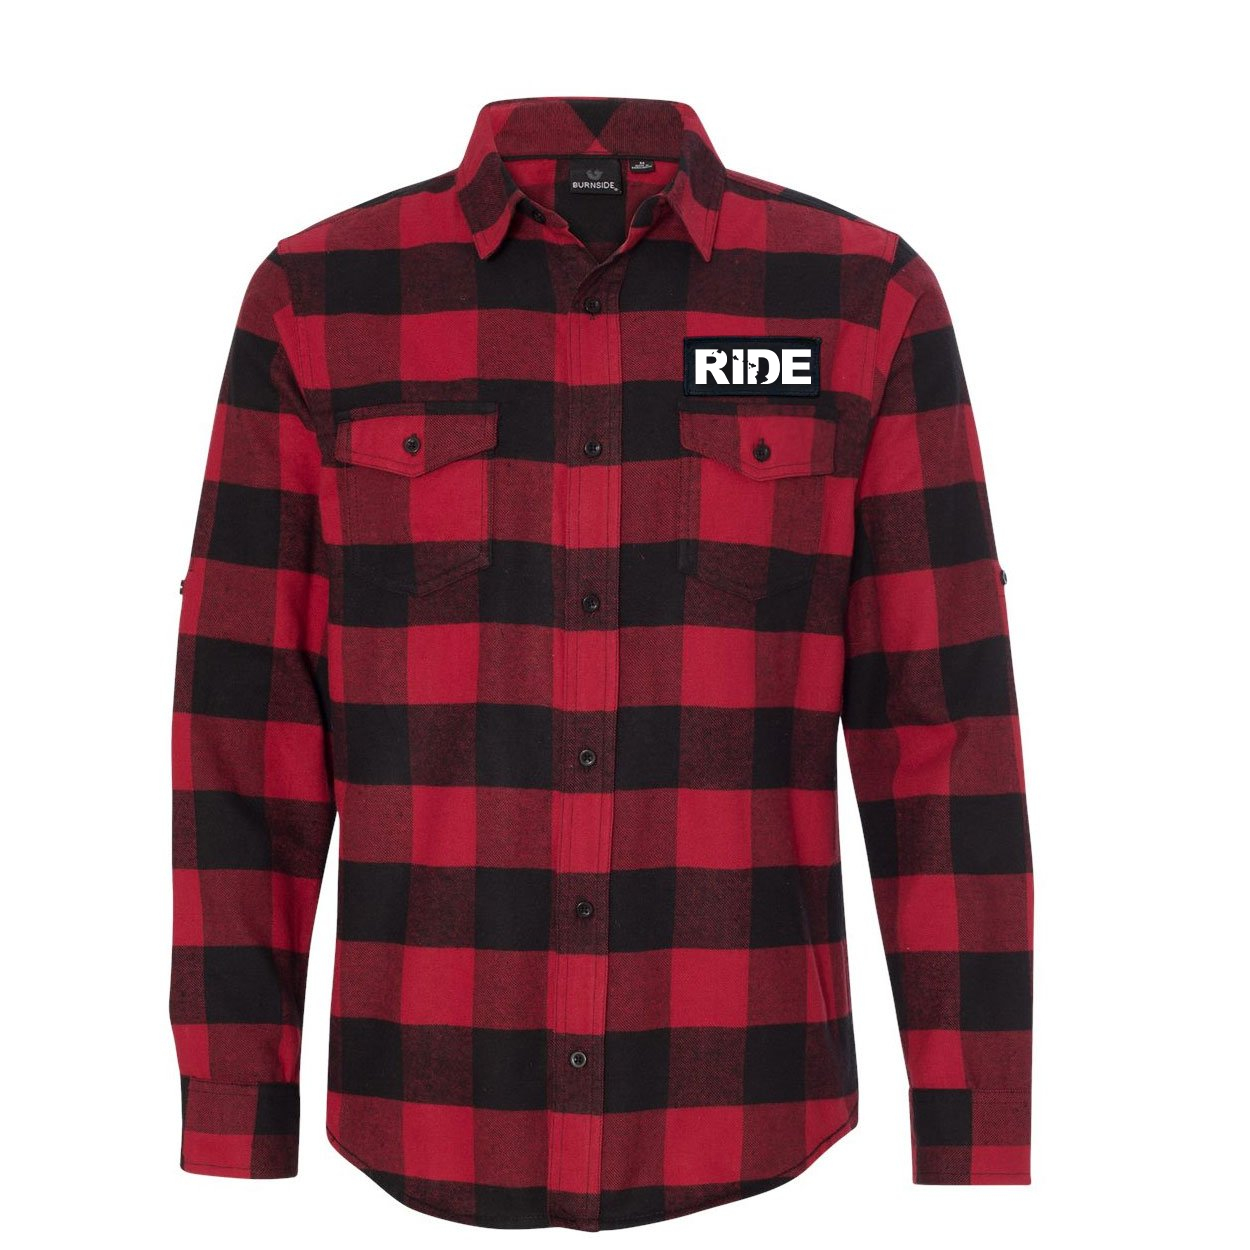 Ride Hawaii Classic Unisex Long Sleeve Woven Patch Flannel Shirt Red/Black Buffalo (White Logo)